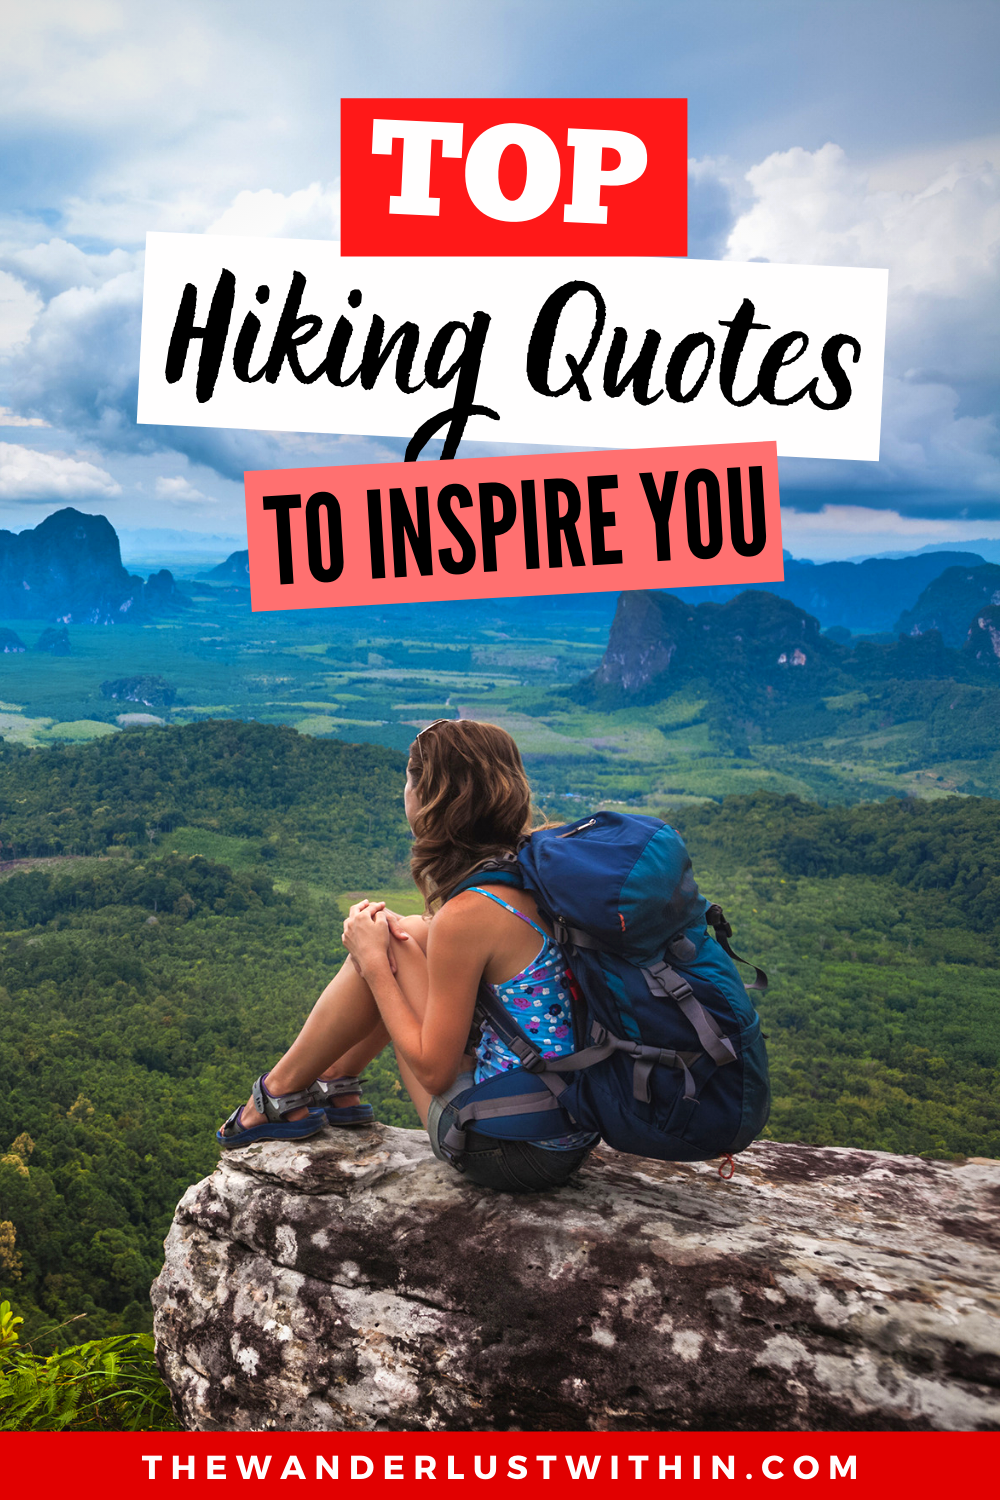 80 Inspiring Hiking Quotes For Adventure Lovers In 2021 The Wanderlust Within Hiking Quotes Hiking Quotes Adventure Hiking Quotes Funny